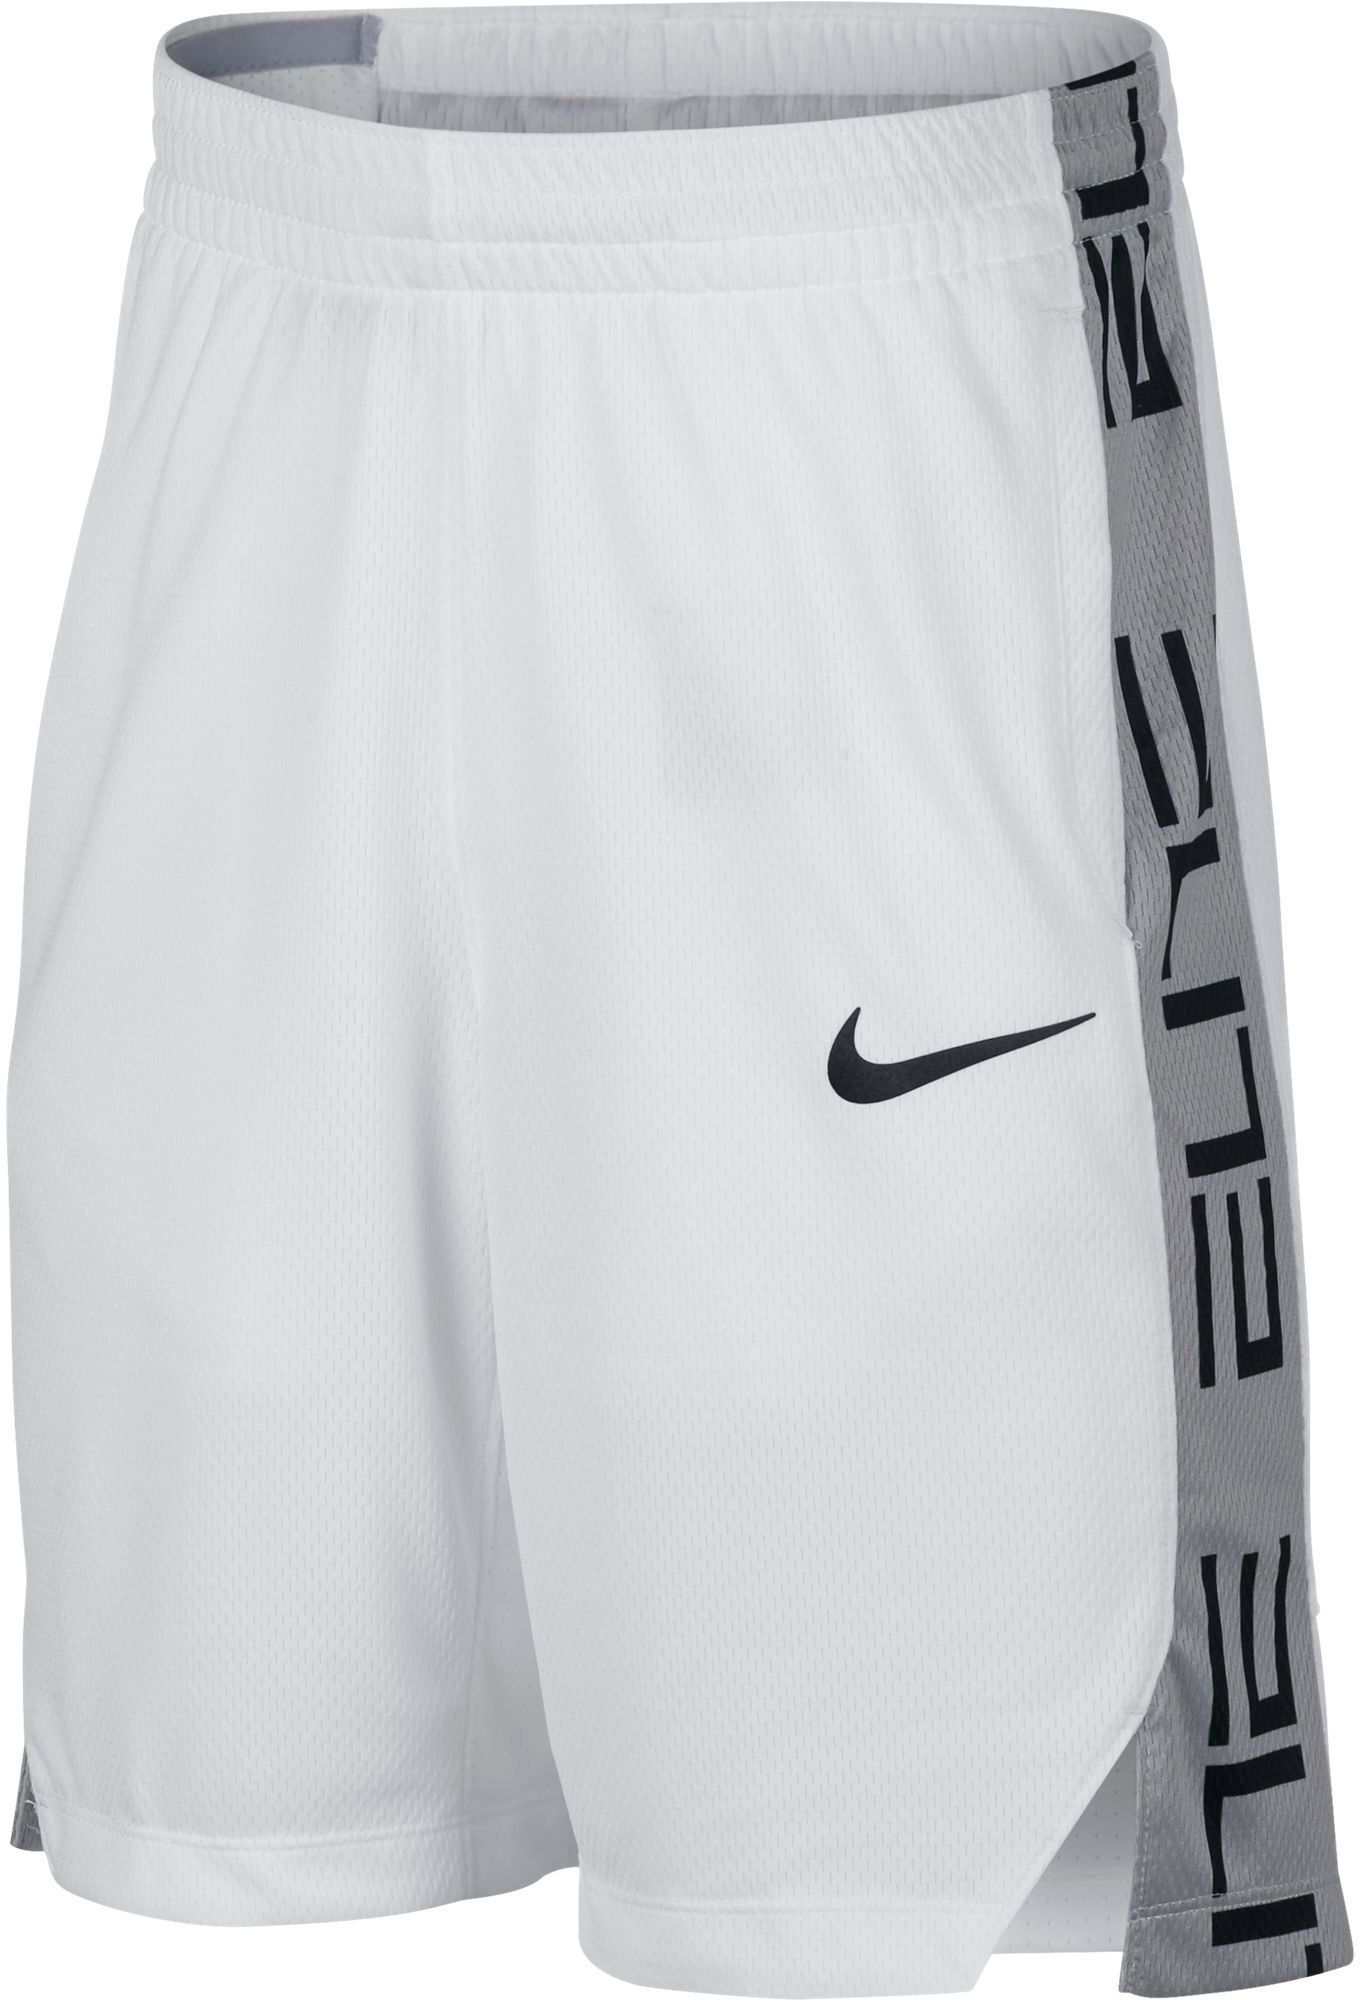 797523c3e8dc0b Nike Boys  Dry Elite Graphic Basketball Shorts